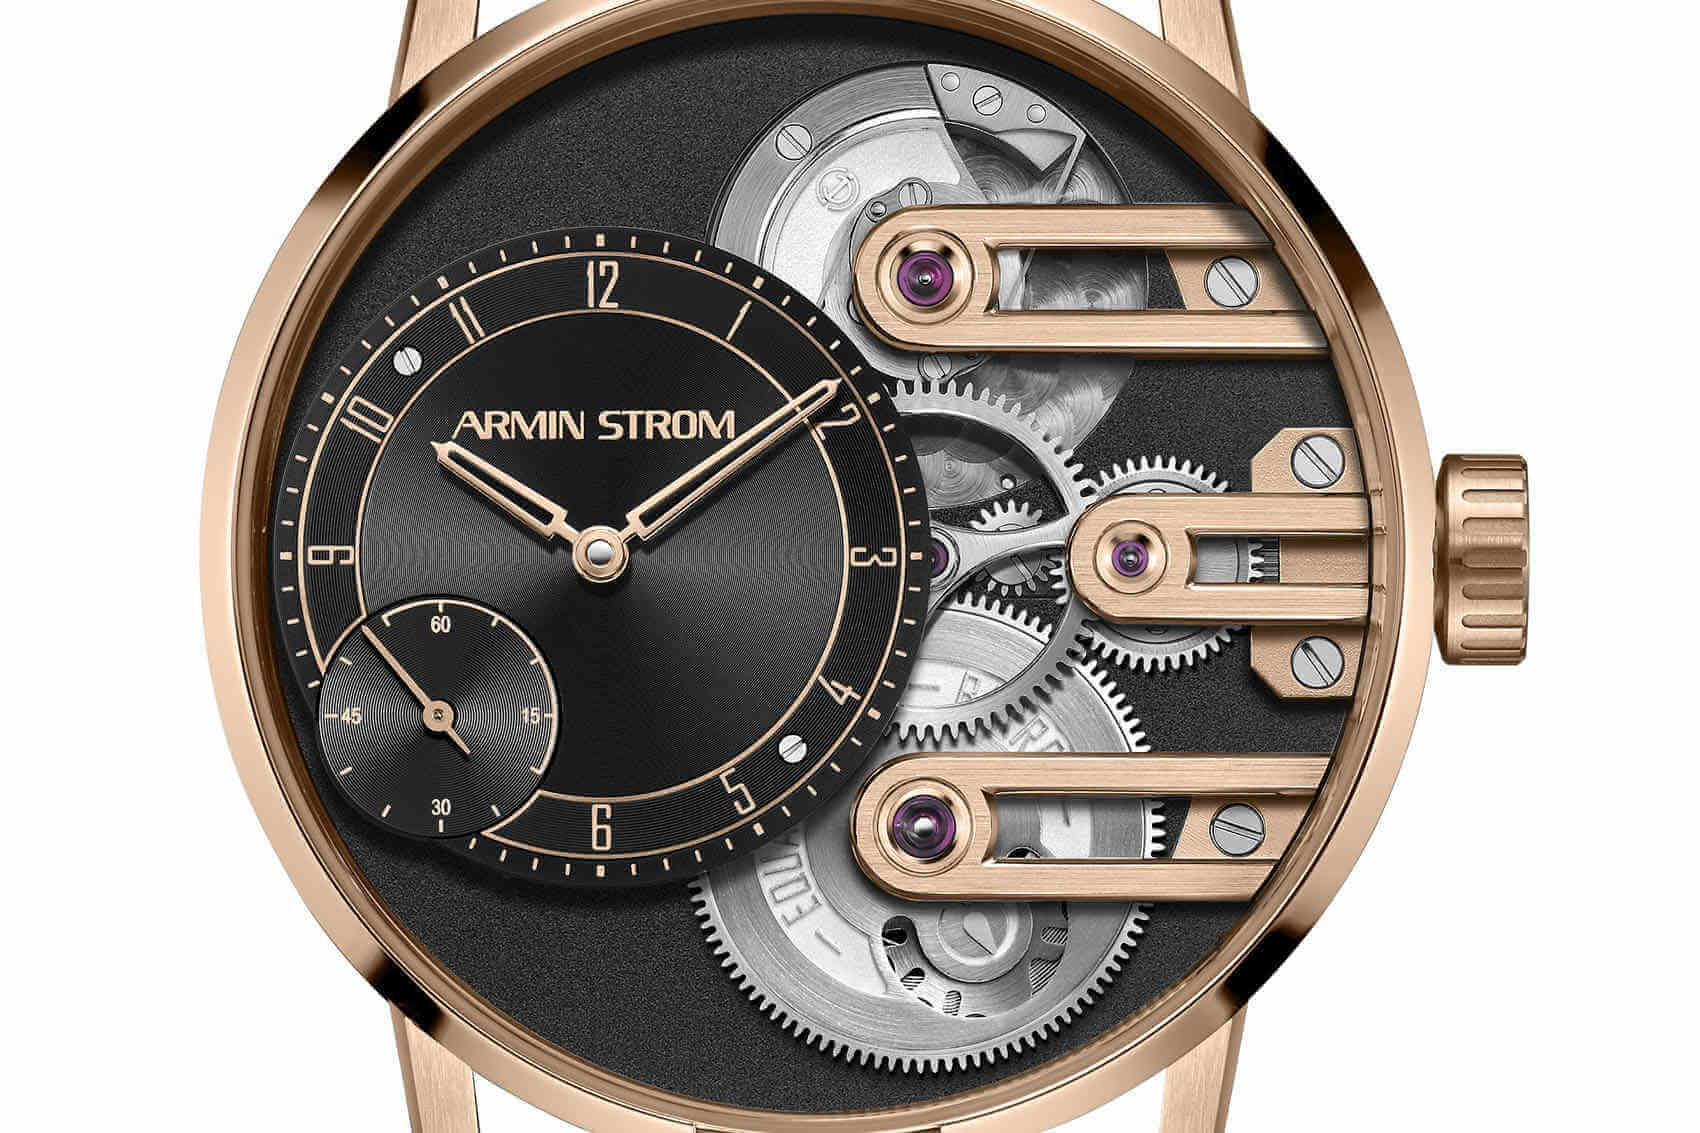 Armin Strom Gravity Equal Force Oro Rosa portada